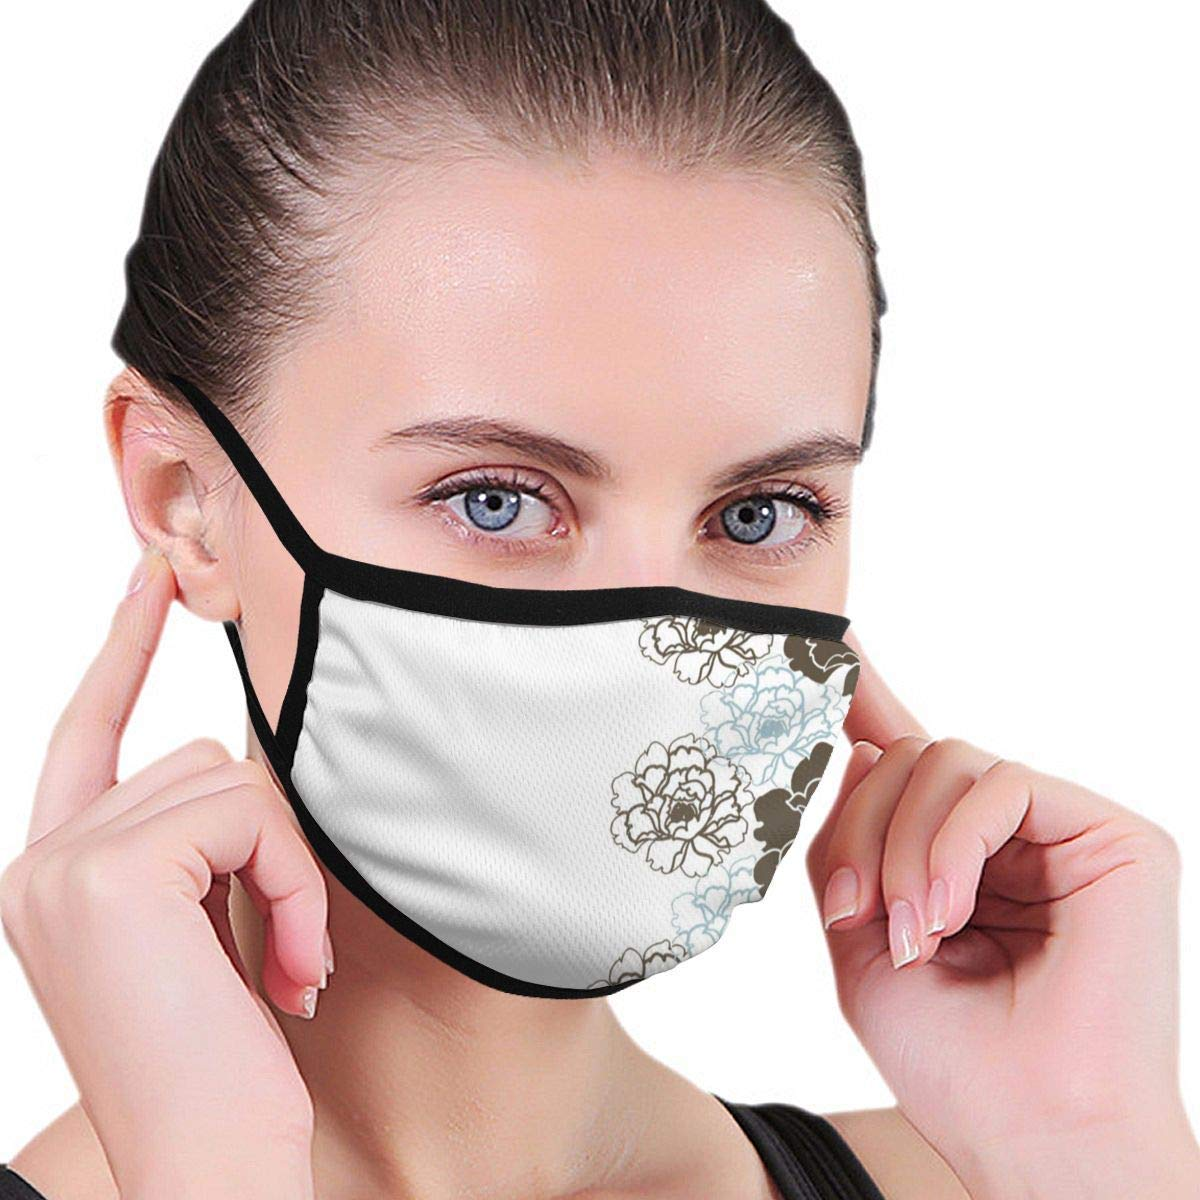 Bdwuhs Mascarillas Bucales Hydrangea Flower Tattoo Anti Pollution Dust Mask Washable and Reusable Polyester Face Mouth Mask Protection from Flu Germ Pollen Allergy Respirator Mask